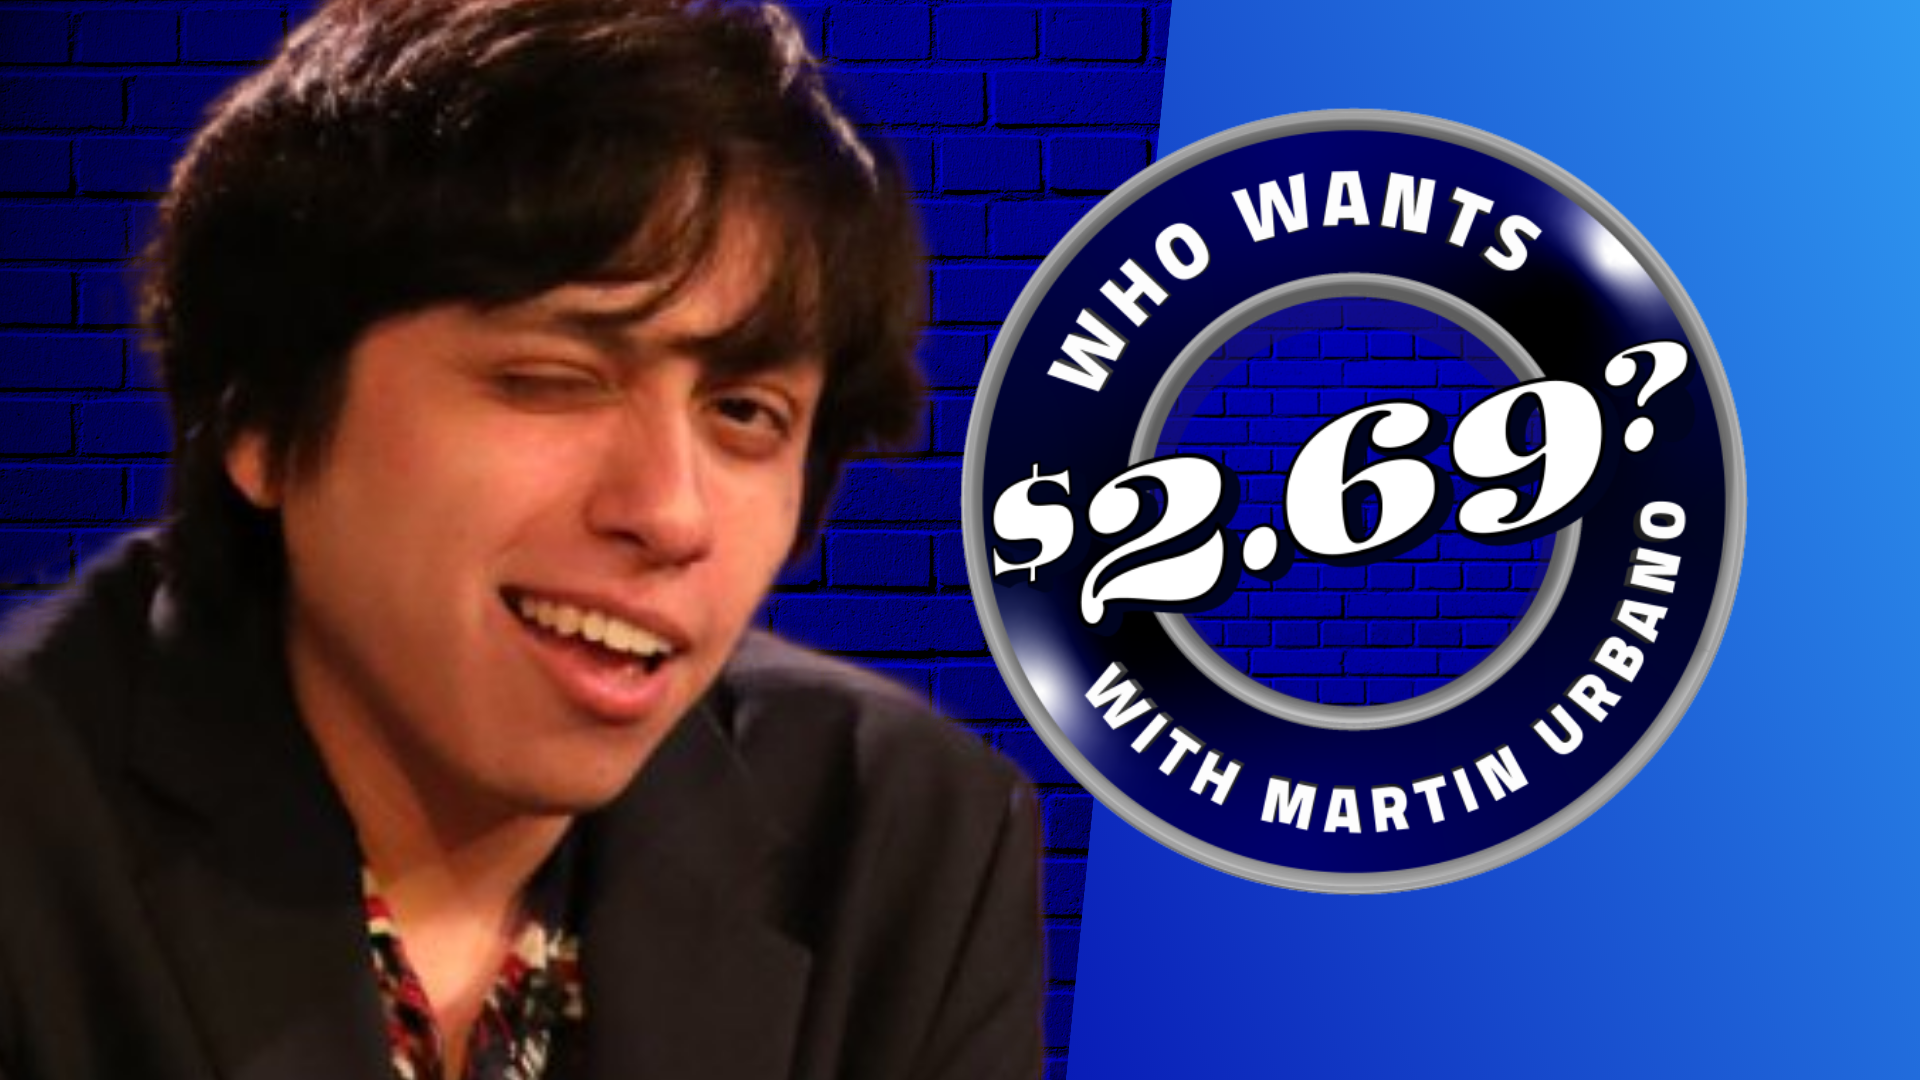 Who Wants $2.69.png